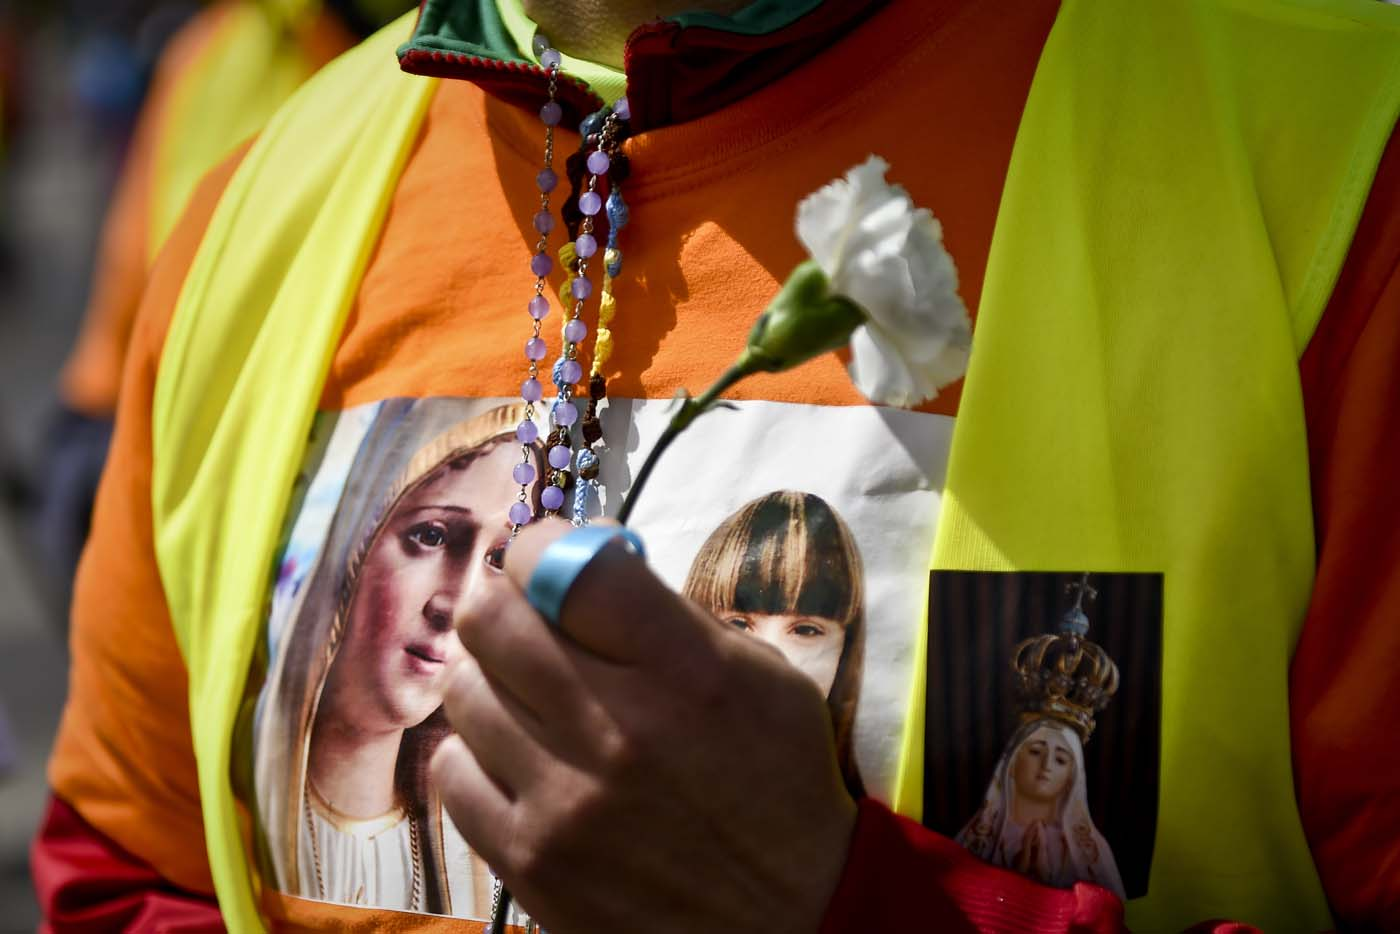 A pilgrim sporting a t-shirt with the image of Our Lady of Fatima, holds a carnation at Fatima, central Portugal, on May 11, 2017.  Two of the three child shepherds who reported apparitions of the Virgin Mary in Fatima, Portugal, one century ago, will be declared saints on May 13, 2017 by Pope Francis. The canonisation of Jacinta and Francisco Marto will take place during the Argentinian pontiff's visit to a Catholic shrine visited by millions of pilgrims every year. / AFP PHOTO / PATRICIA DE MELO MOREIRA